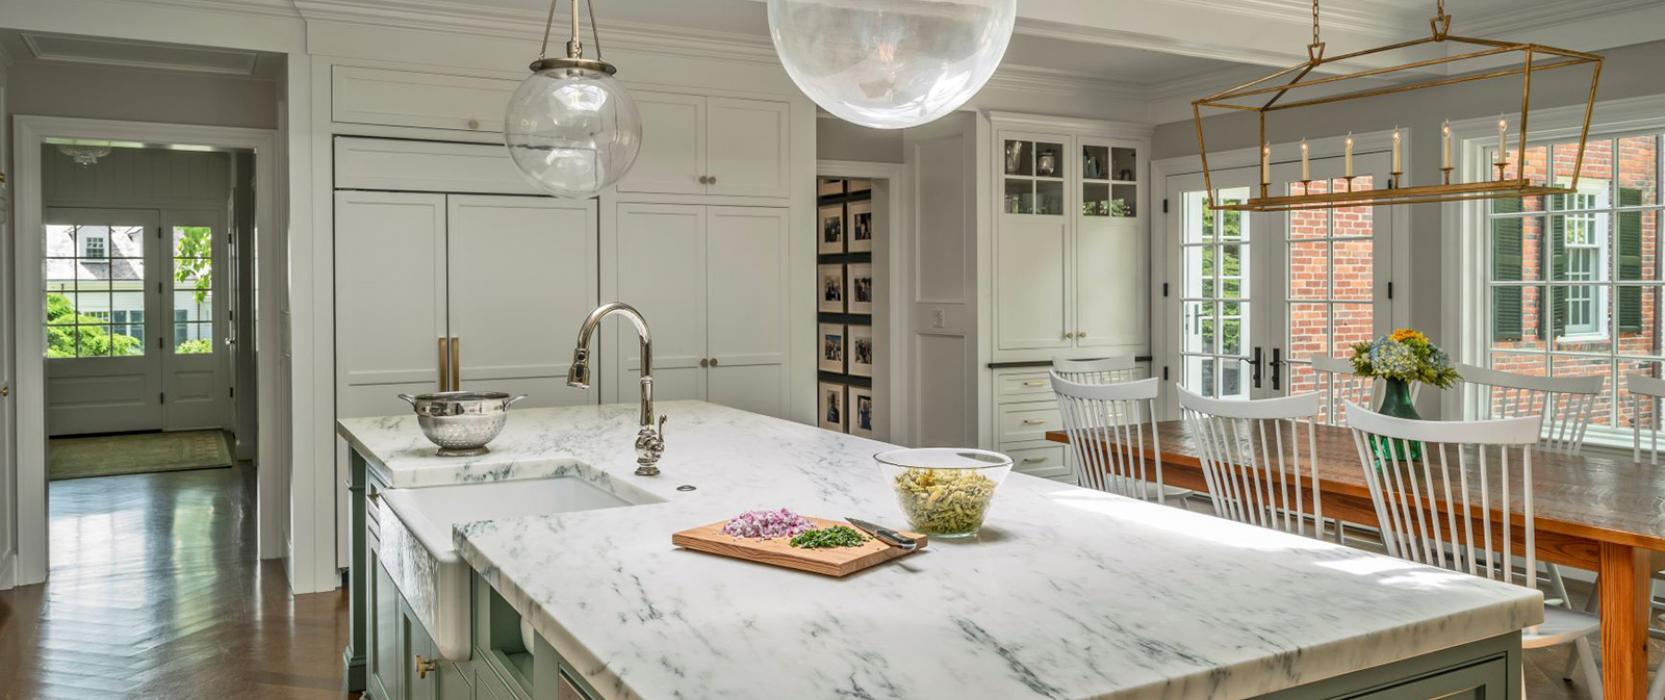 Imperial Danby marble kitchen counter by Onyx Marble & Granite